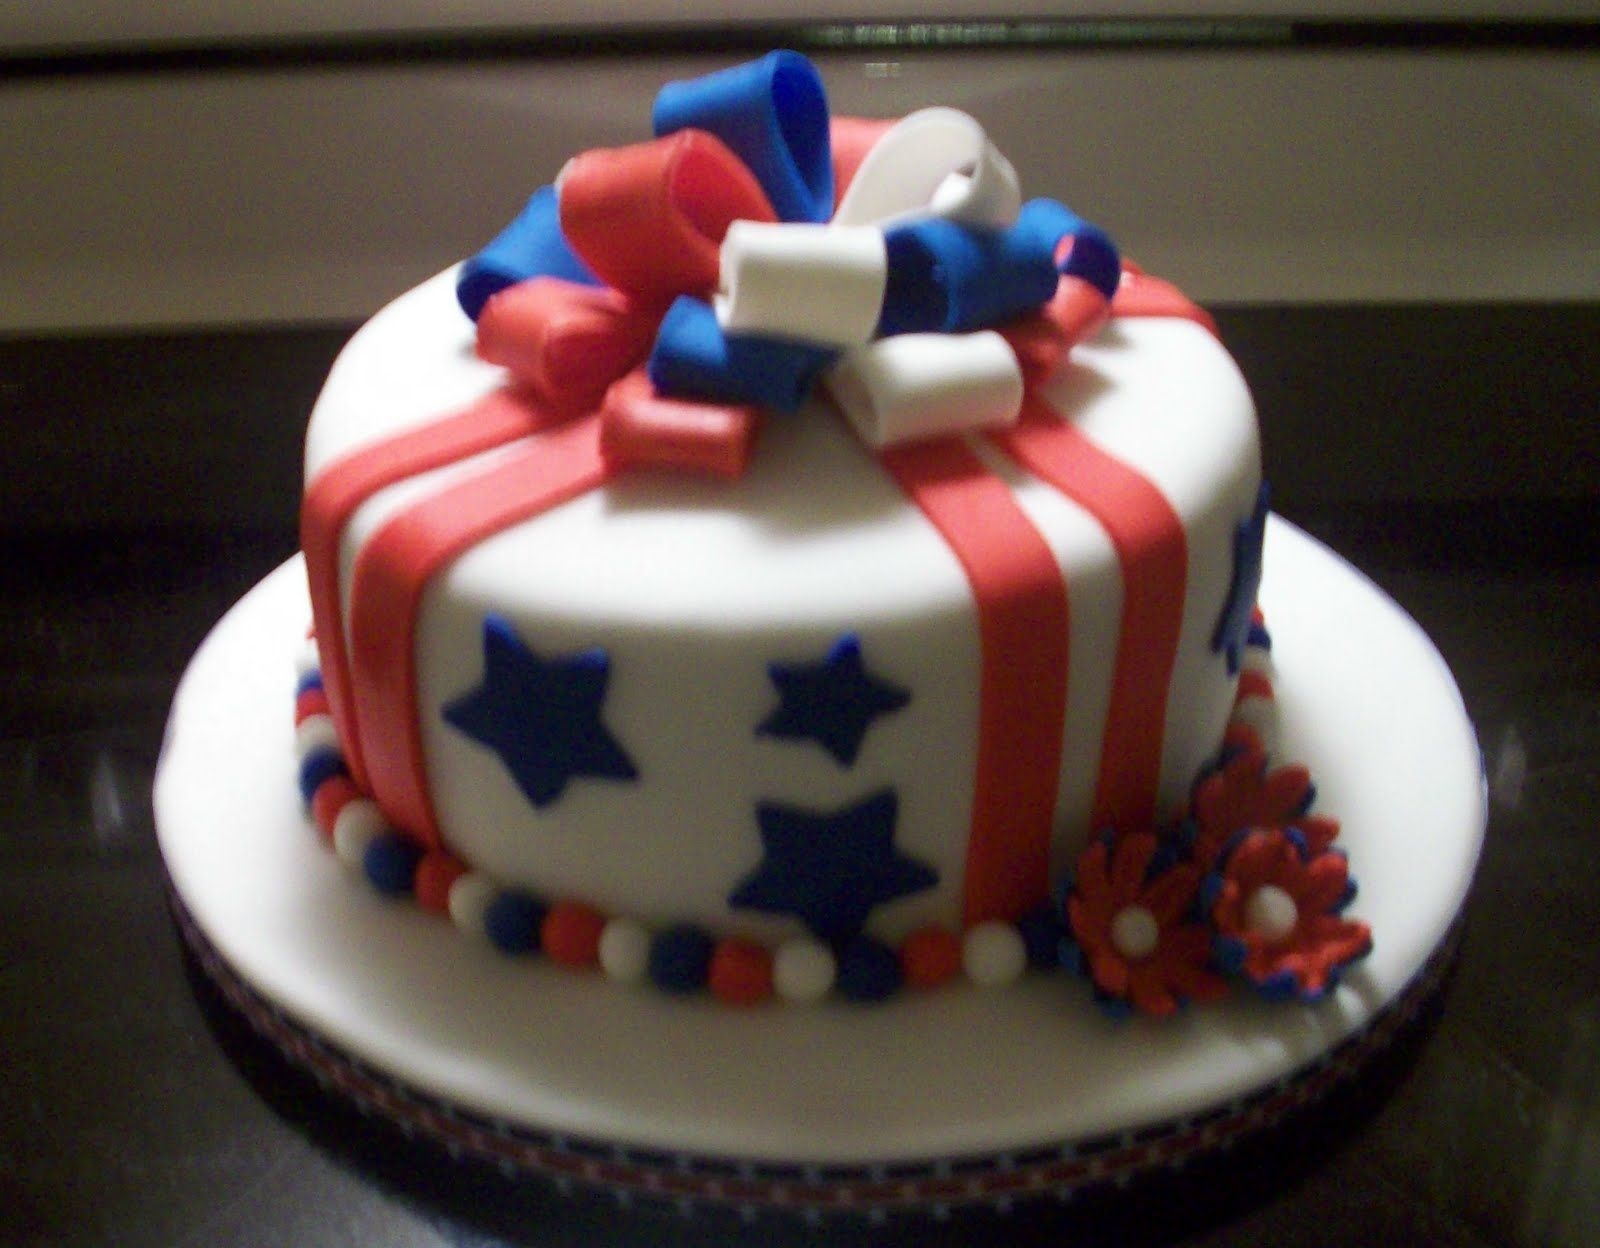 Cake Decorating Ideas For July 4th : fondant 4th of july cakes - Google Search Fourth of July ...